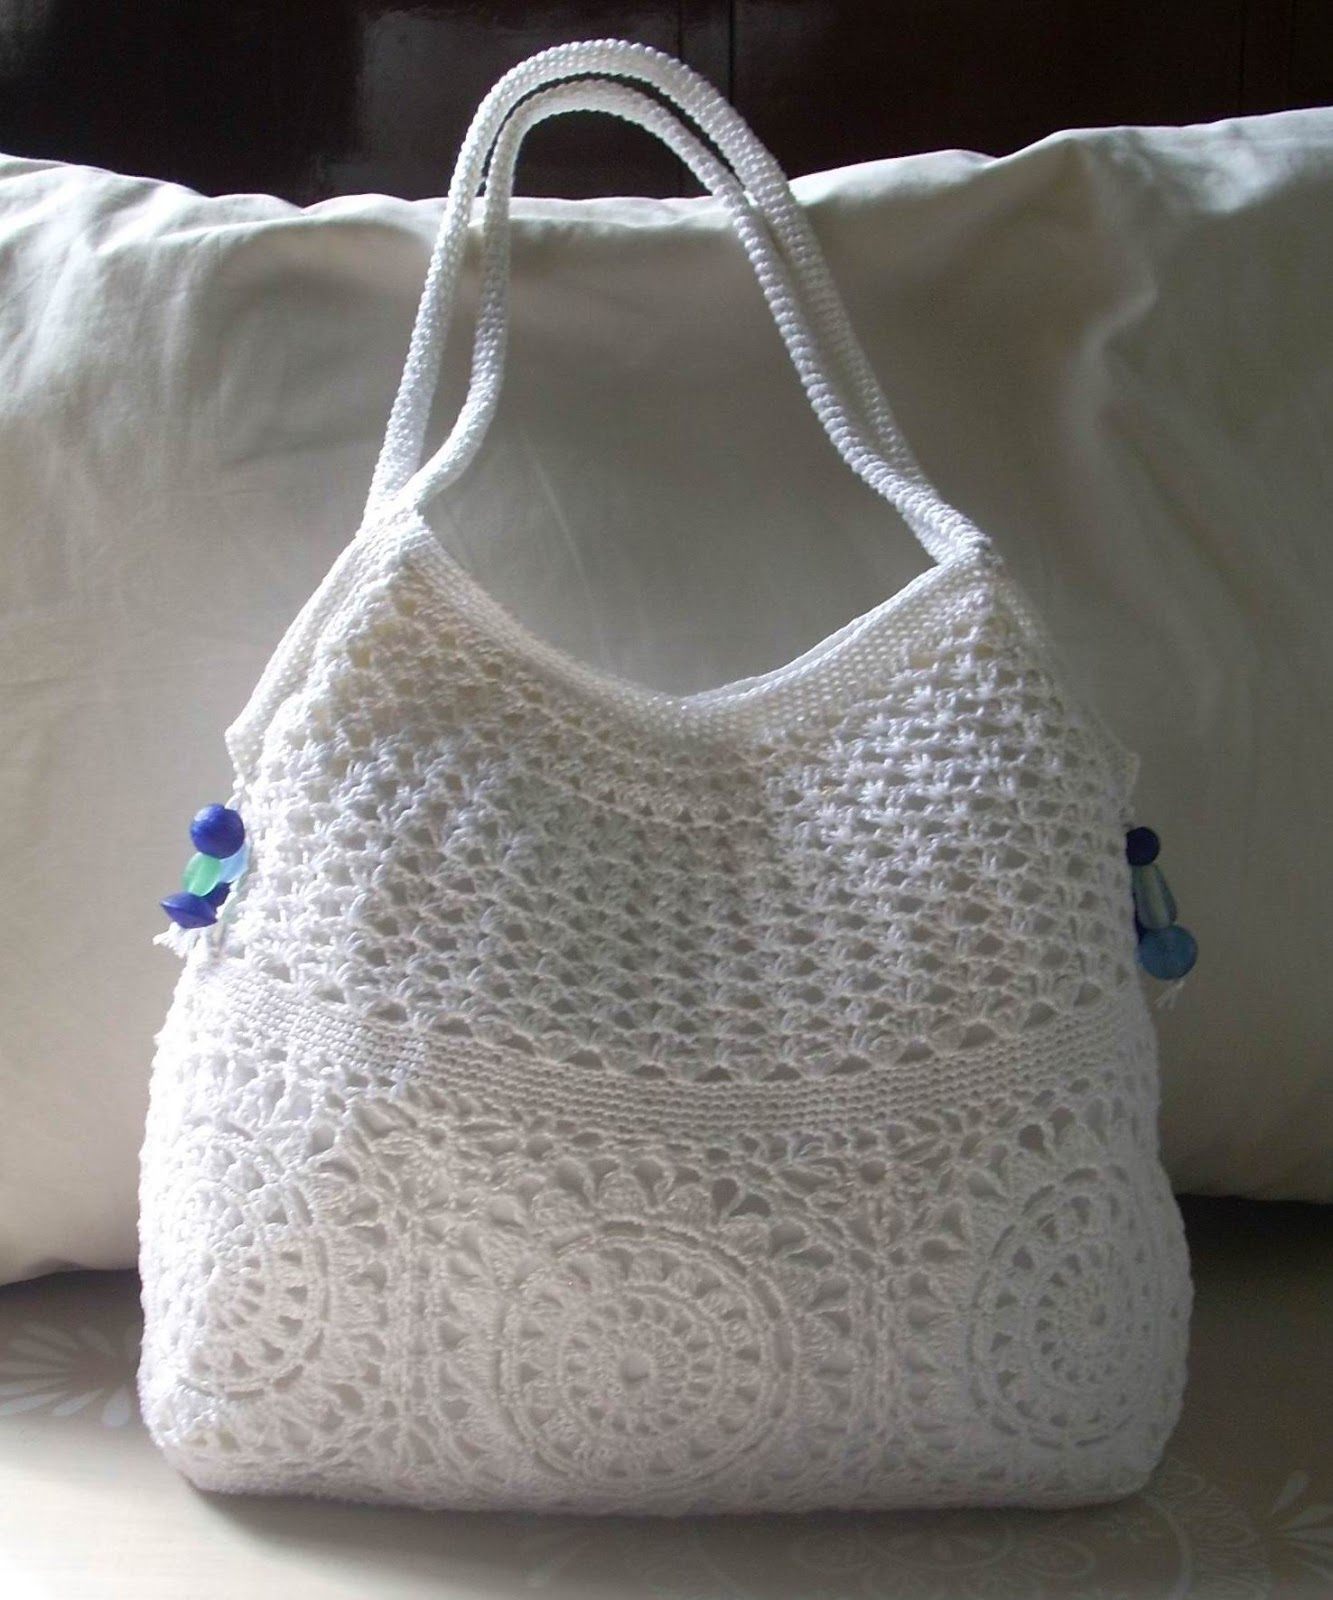 How To Crochet A Purse : used white cotton thread size 8, held doubled, on an unknown hook ...